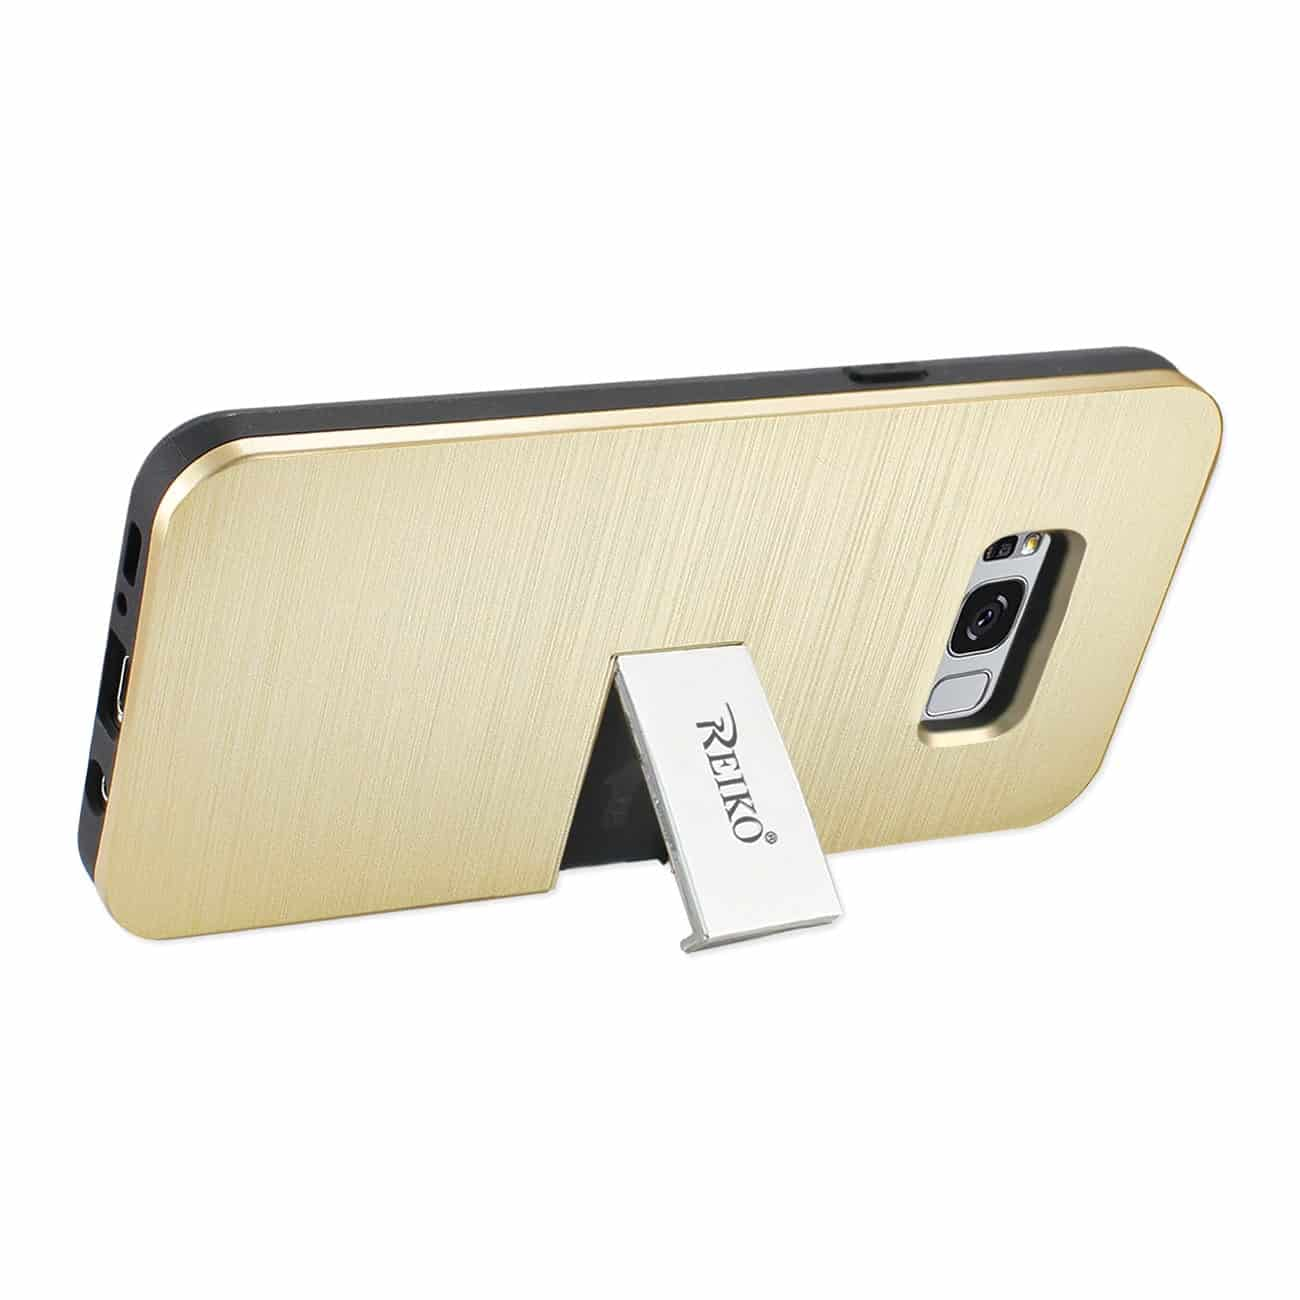 SAMSUNG GALAXY S8/ SM SLIM ARMOR HYBRID CASE WITH CARD HOLDER AND KICKSTAND IN GOLD